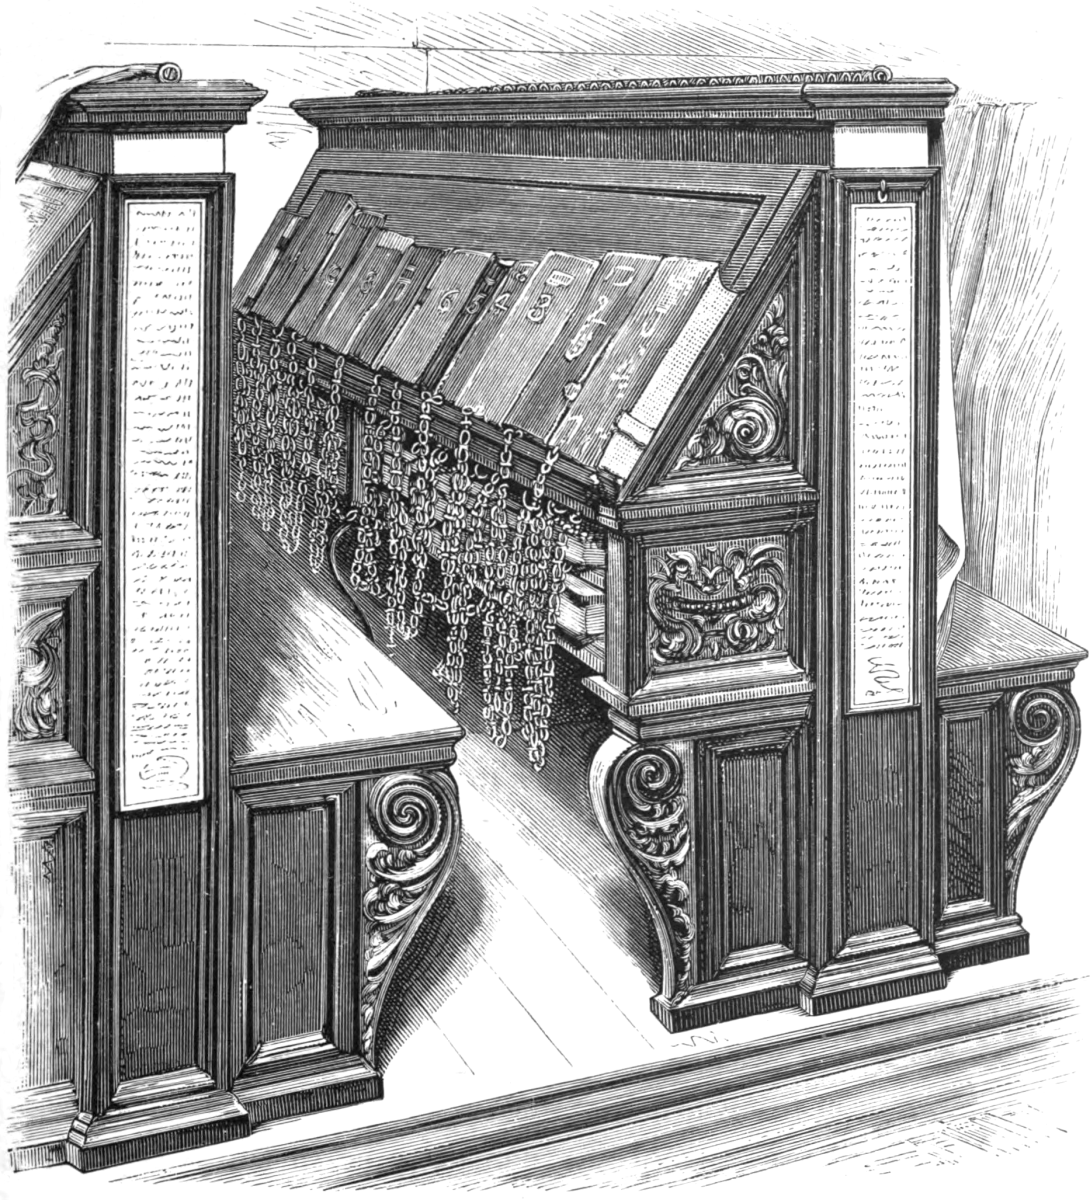 The books were chained to benches in the reading rooms of the library in the fifteenth century.